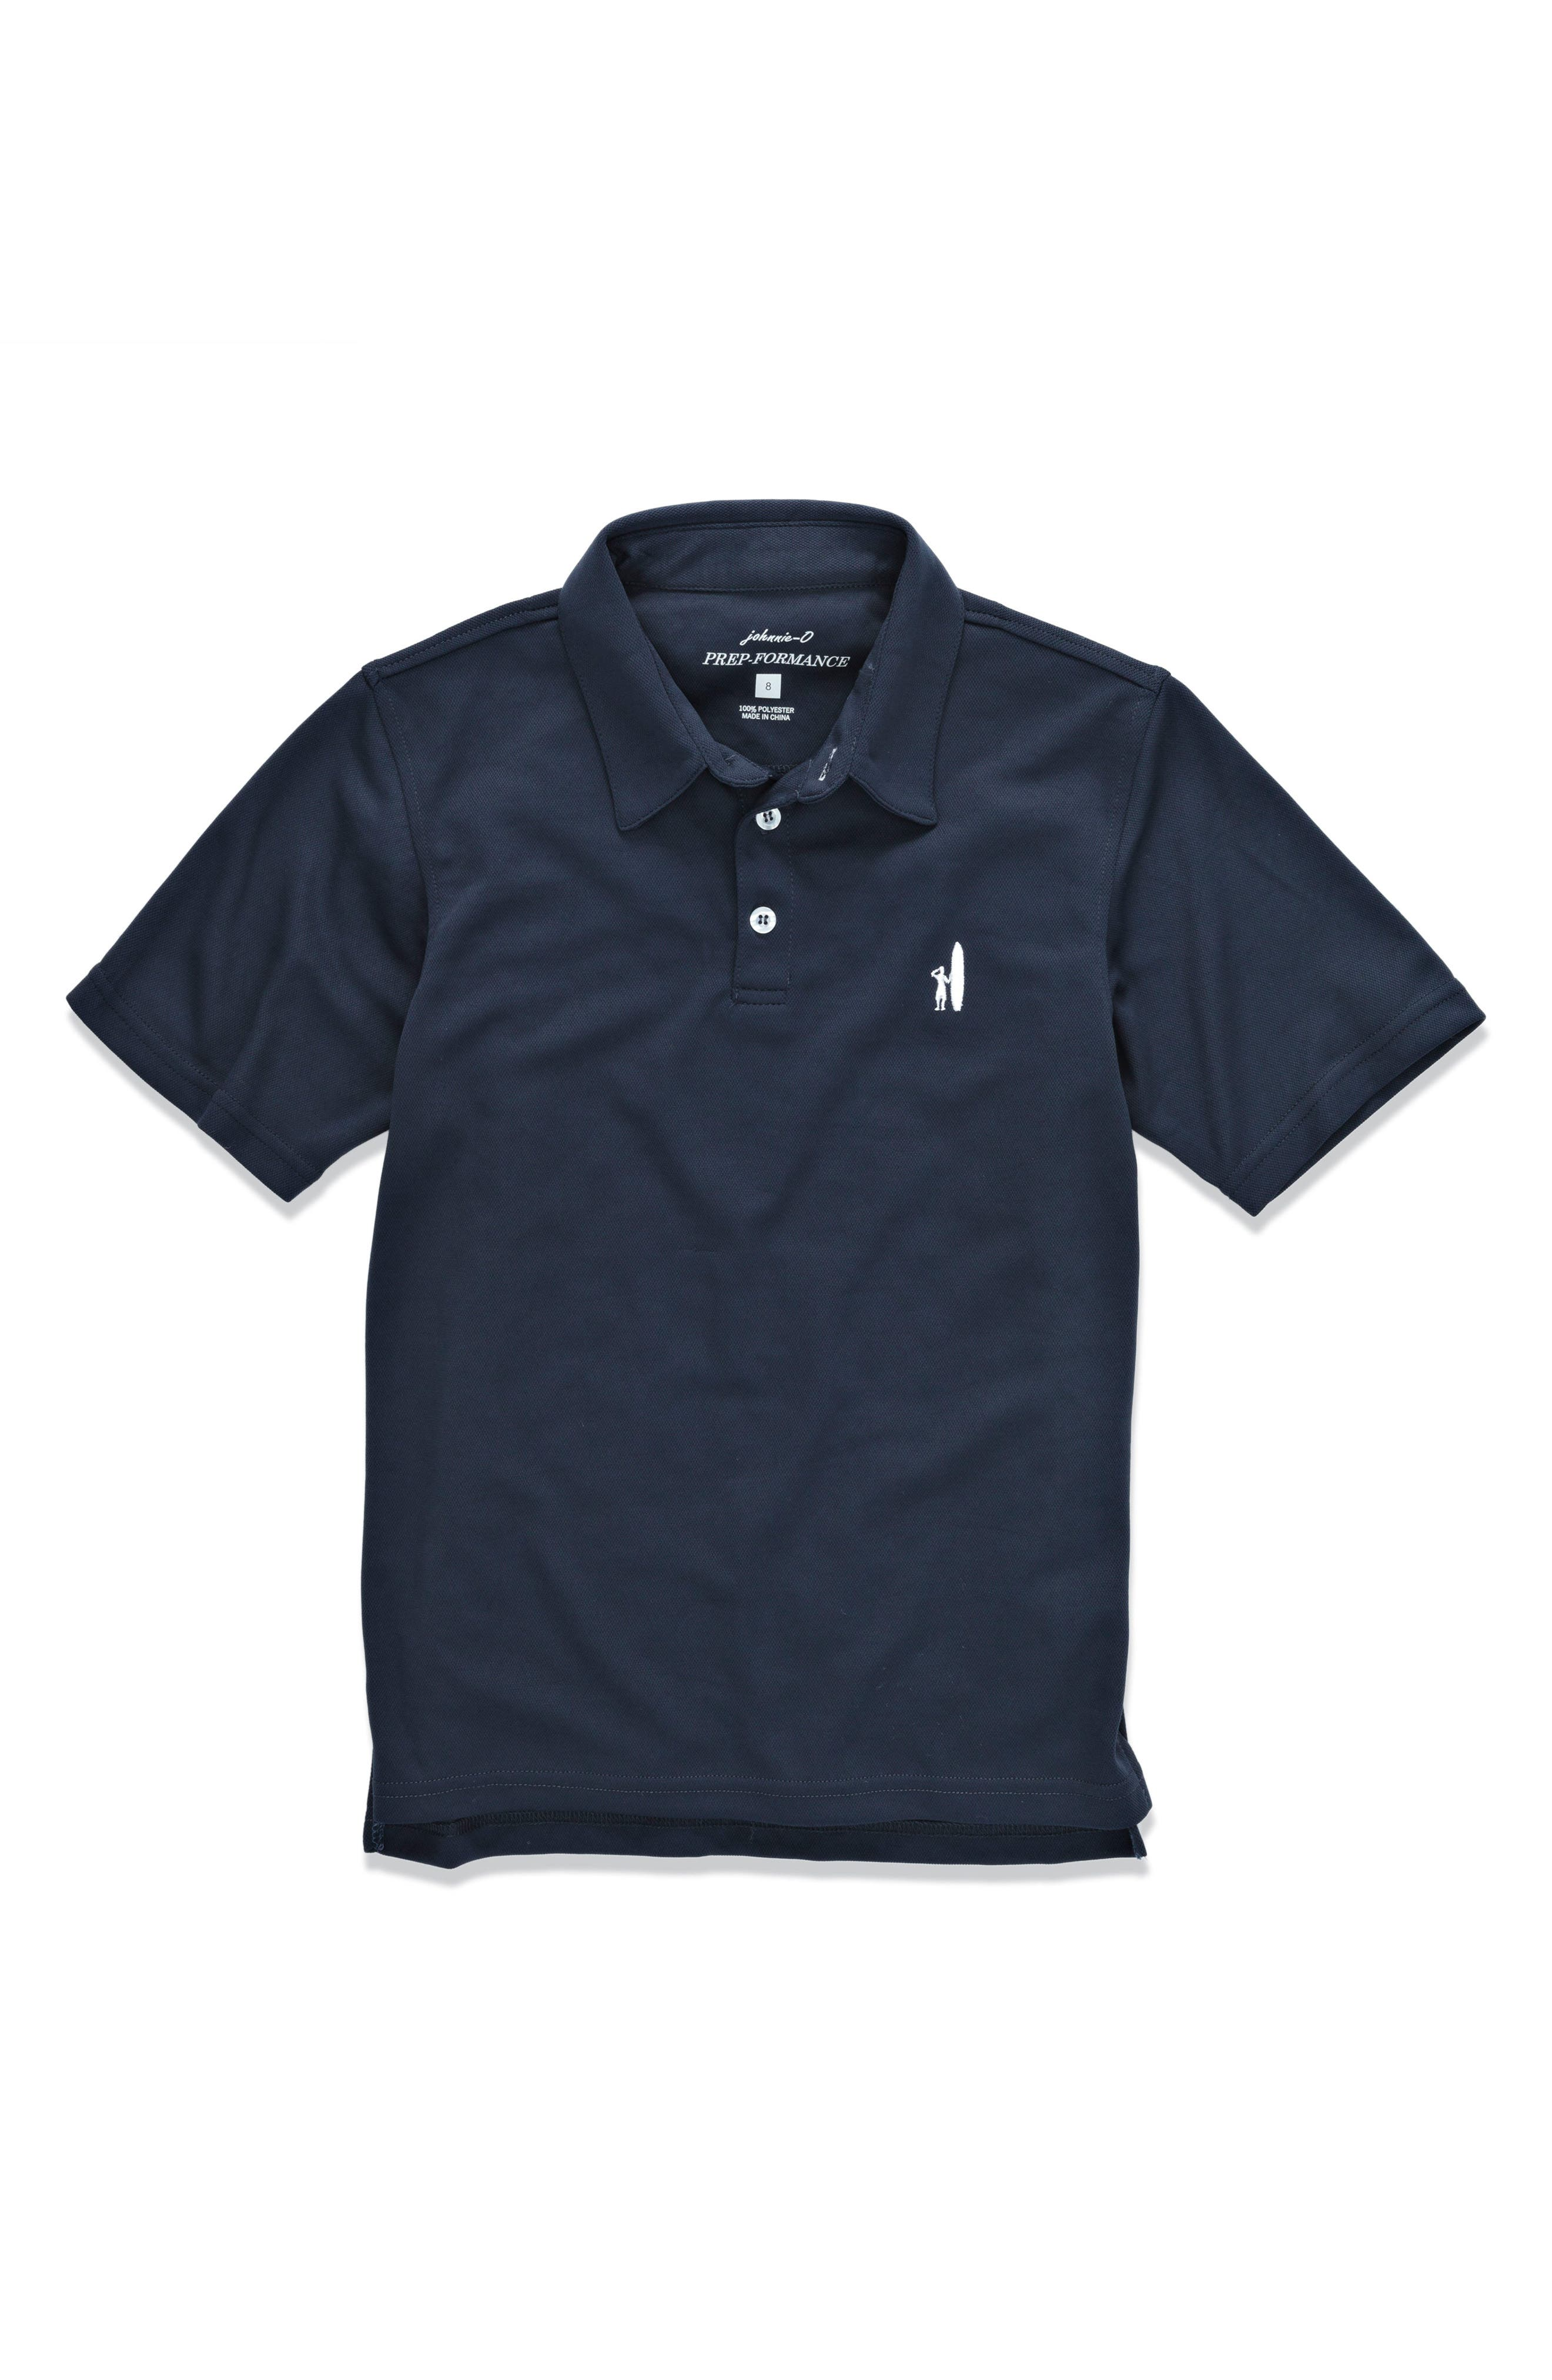 Alternate Image 1 Selected - johnnie-O Fairway Solid Polo (Little Boys & Big Boys)